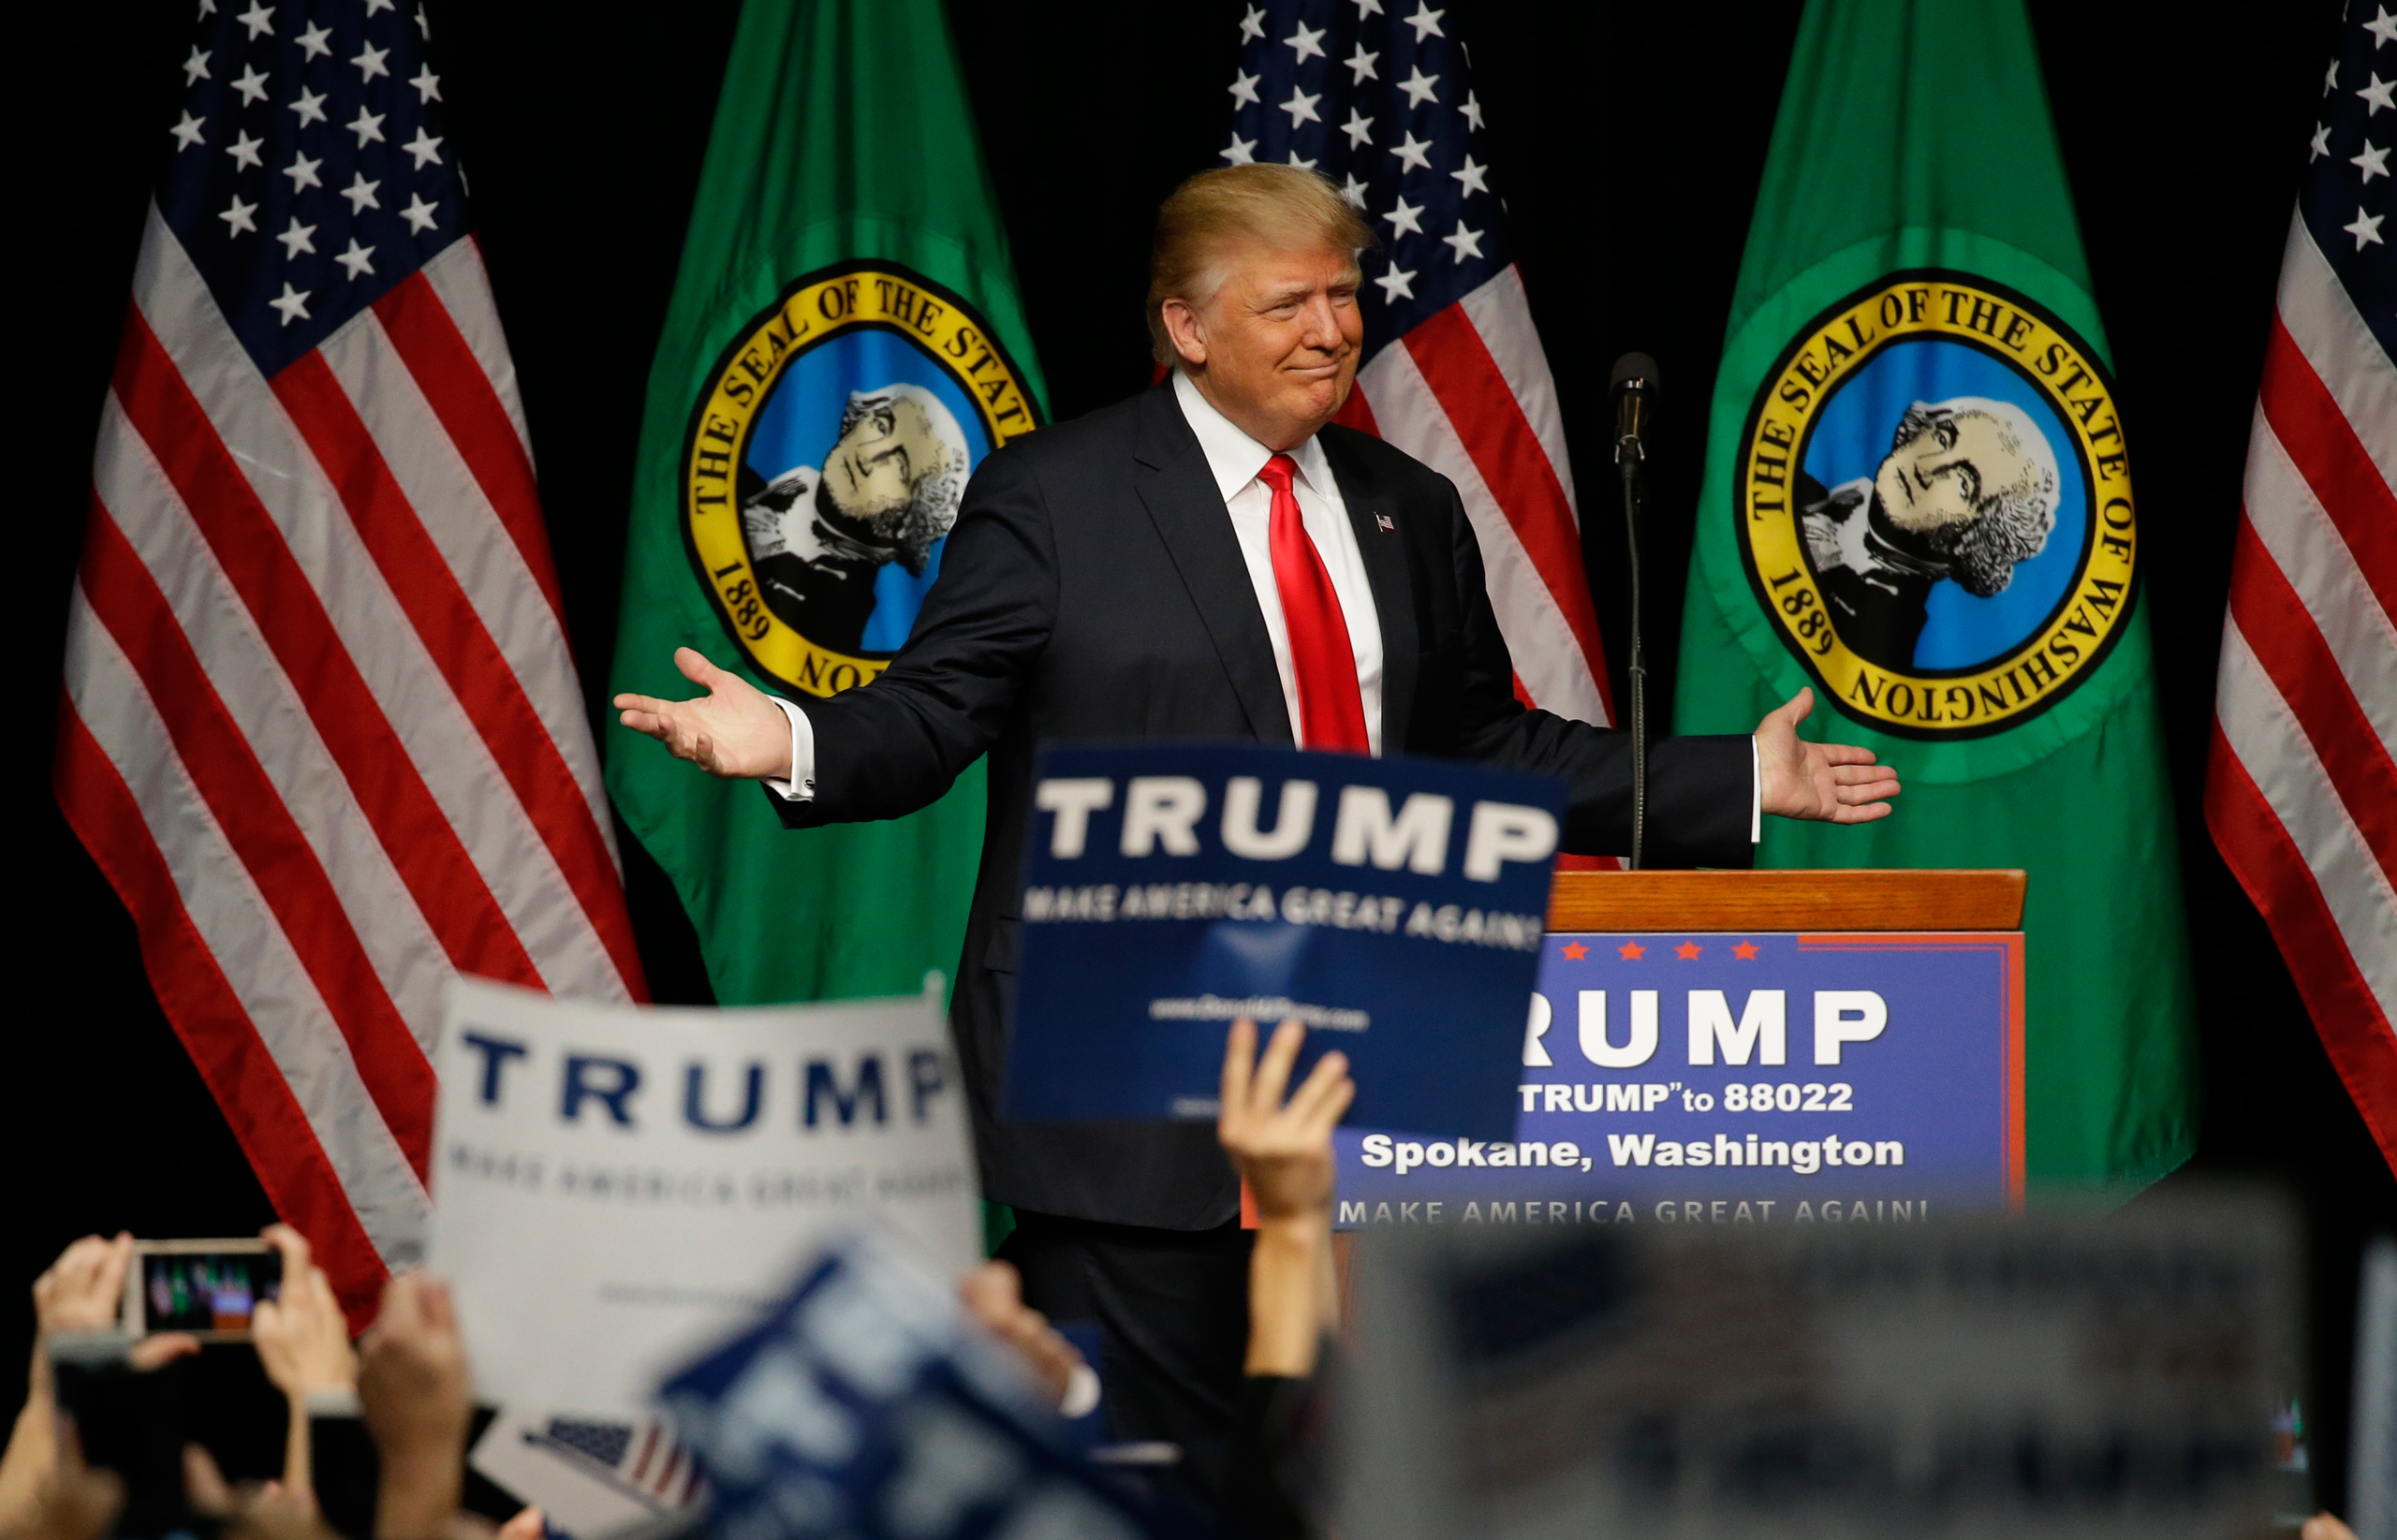 Republican presidential candidate Donald Trump speaks during a rally in Spokane, Wash., on May 7, 2016.